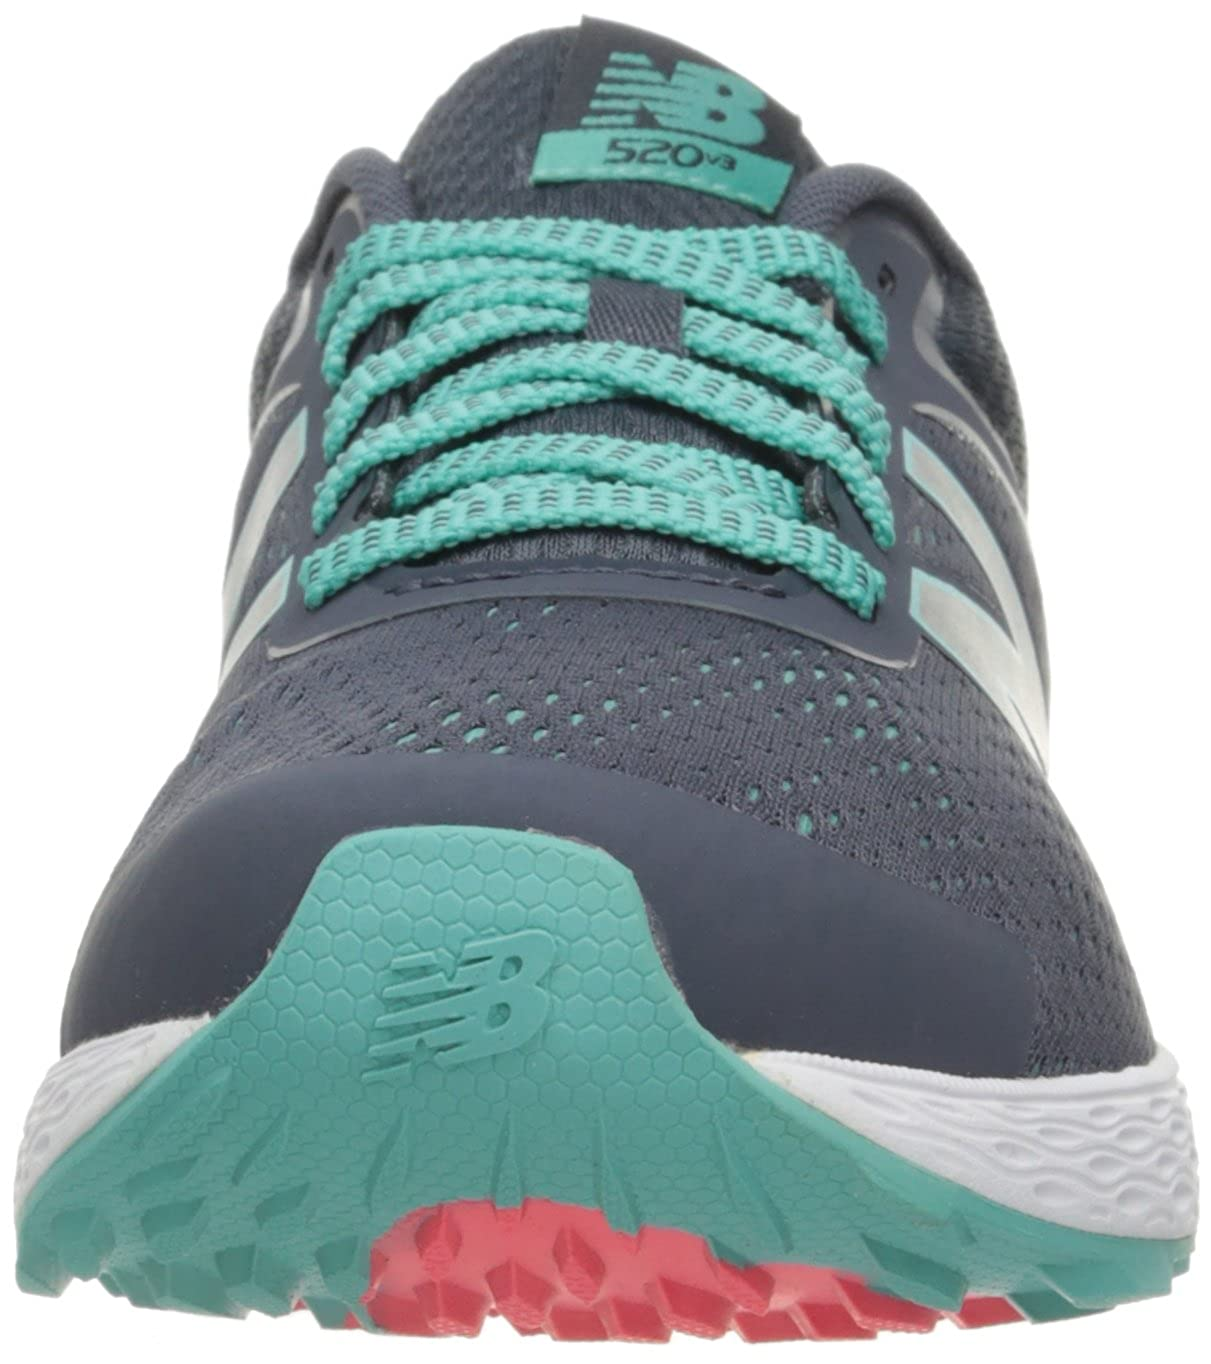 New Balance Women s 520v3 Comfort Ride Running Shoe